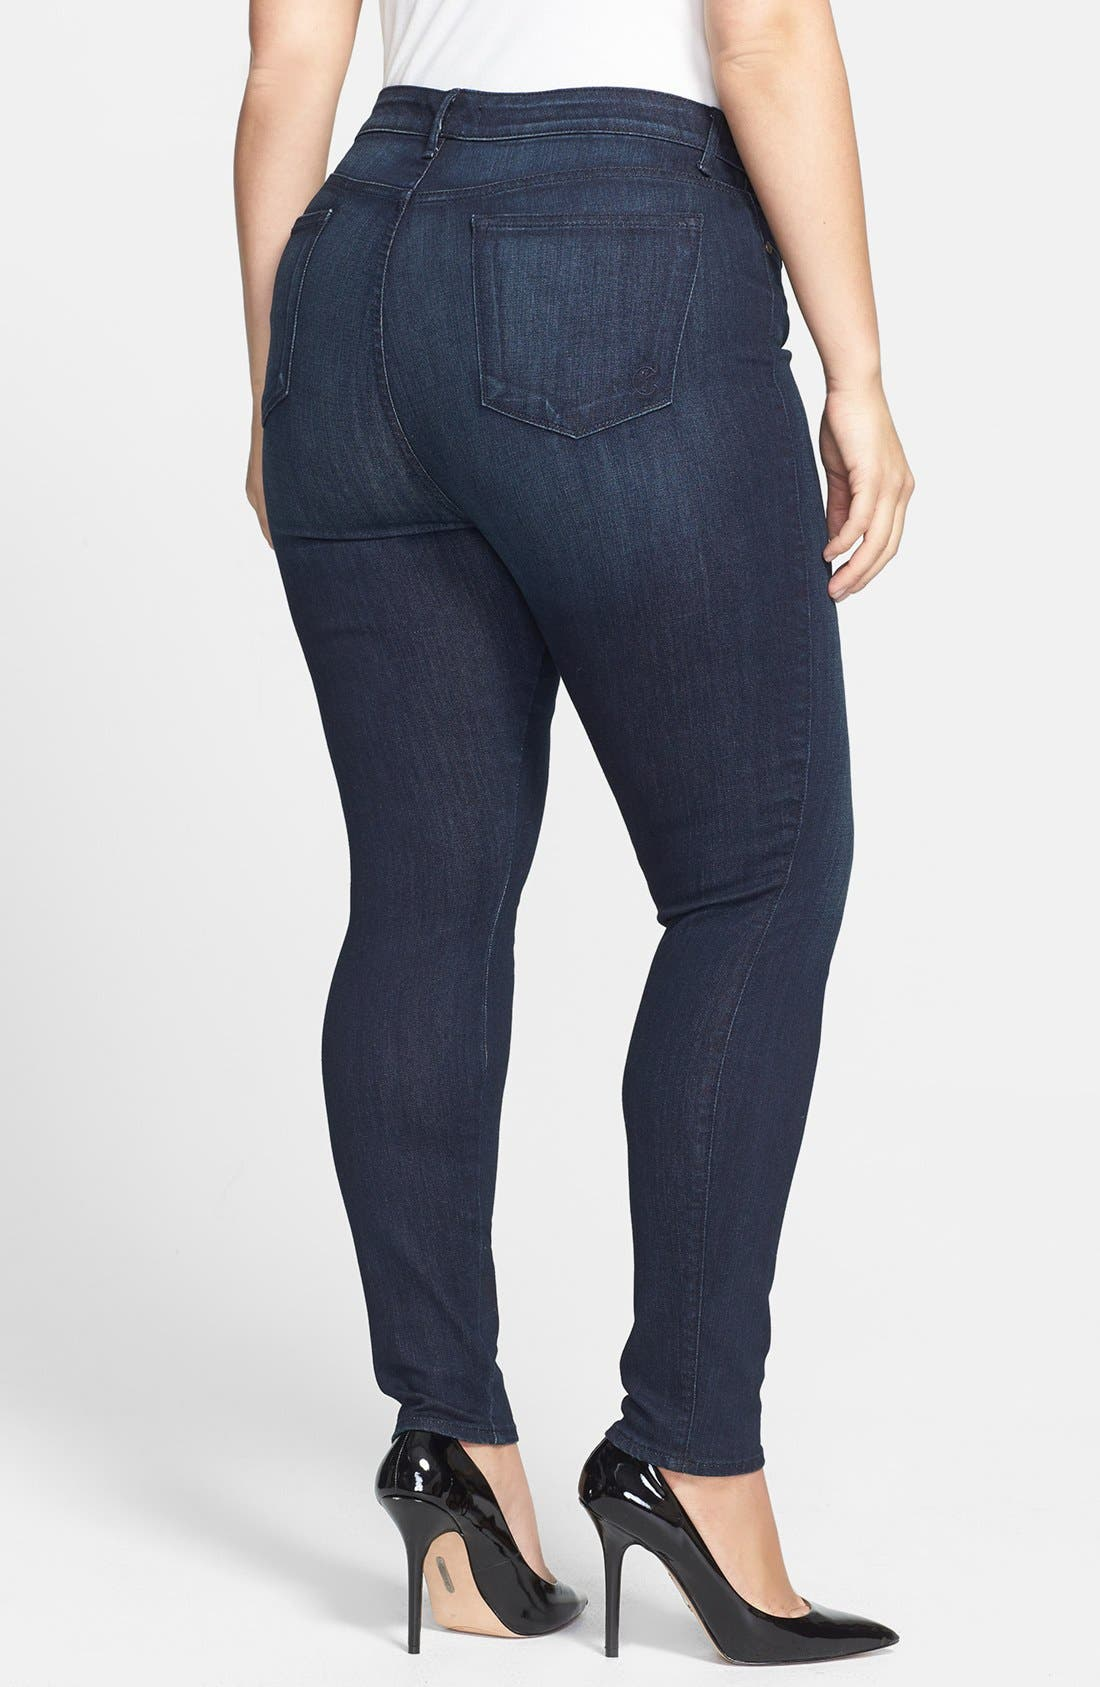 Alternate Image 2  - CJ by Cookie Johnson 'Joy' Legging Style Stretch Jeans (Kahana) (Plus Size)